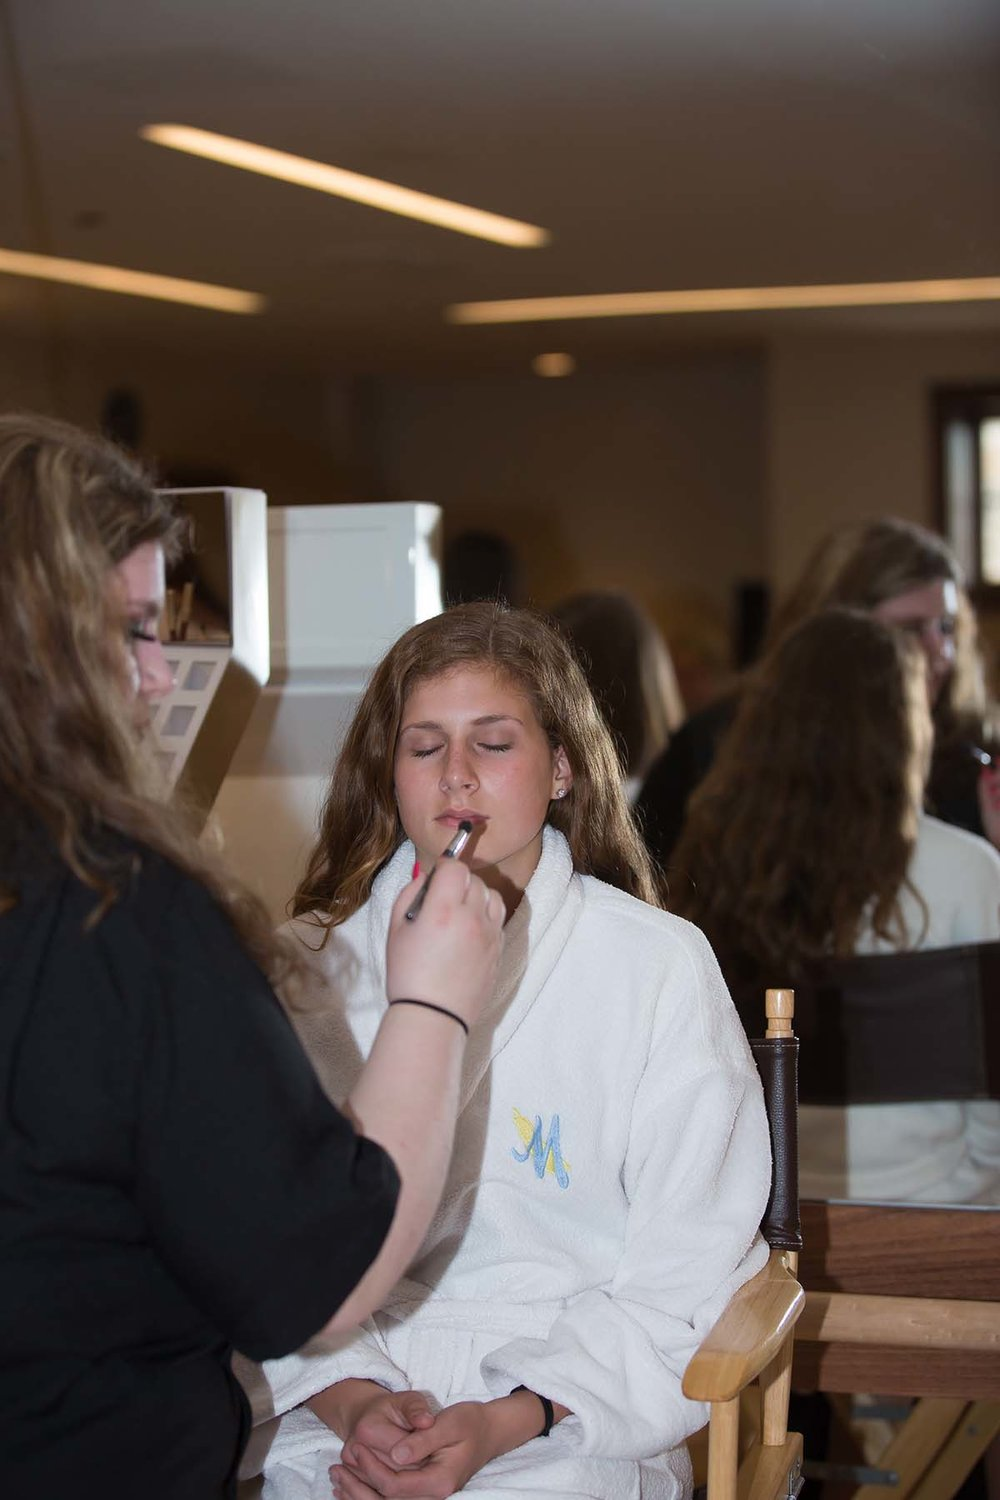 ehw_MothersDay2016-126 of 270).jpg